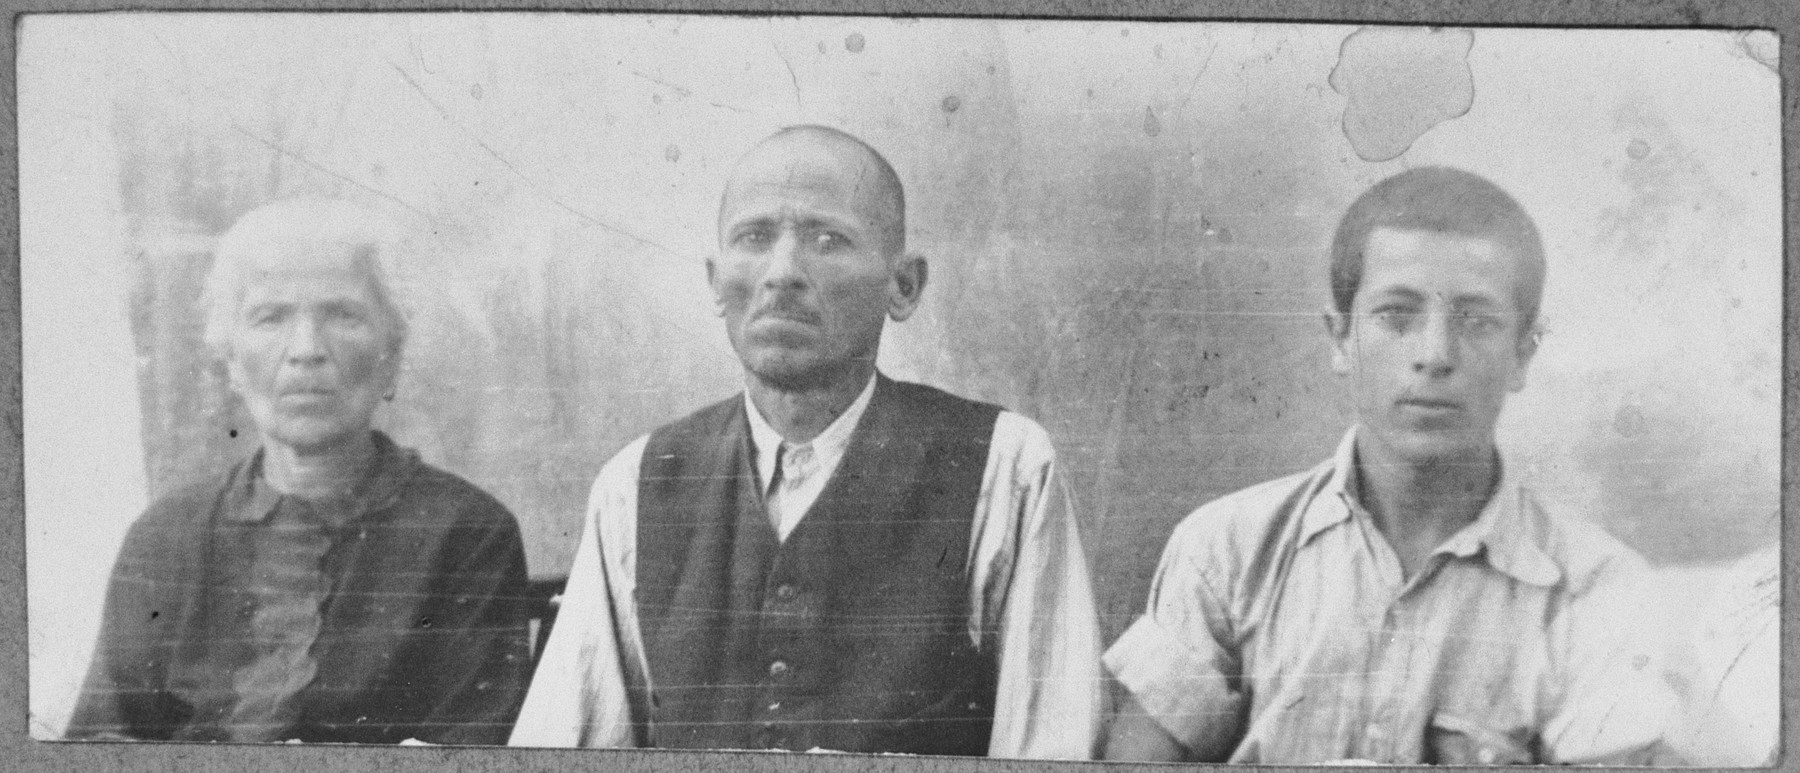 Portrait of Samuel (B.) Mayo, his wife, Sara, and his son, Isak.  Samuel was a second-hand dealer and Isak, a student.  They lived at Zvornitska 27 in Bitola.